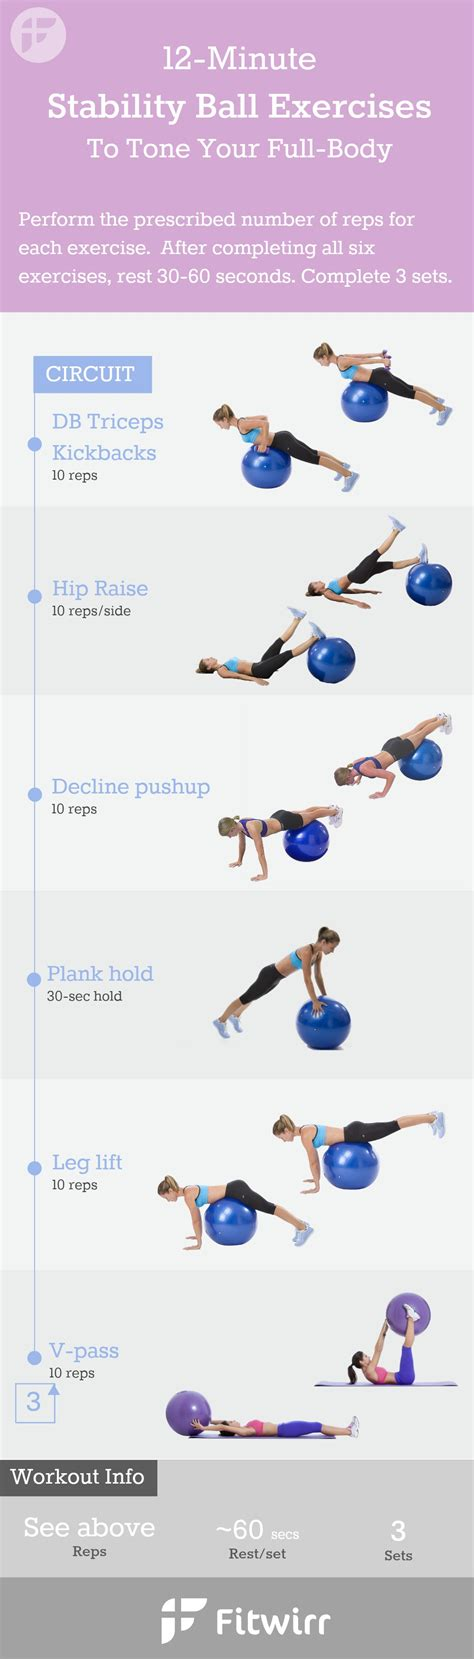 stability ball exercises  min  home workout